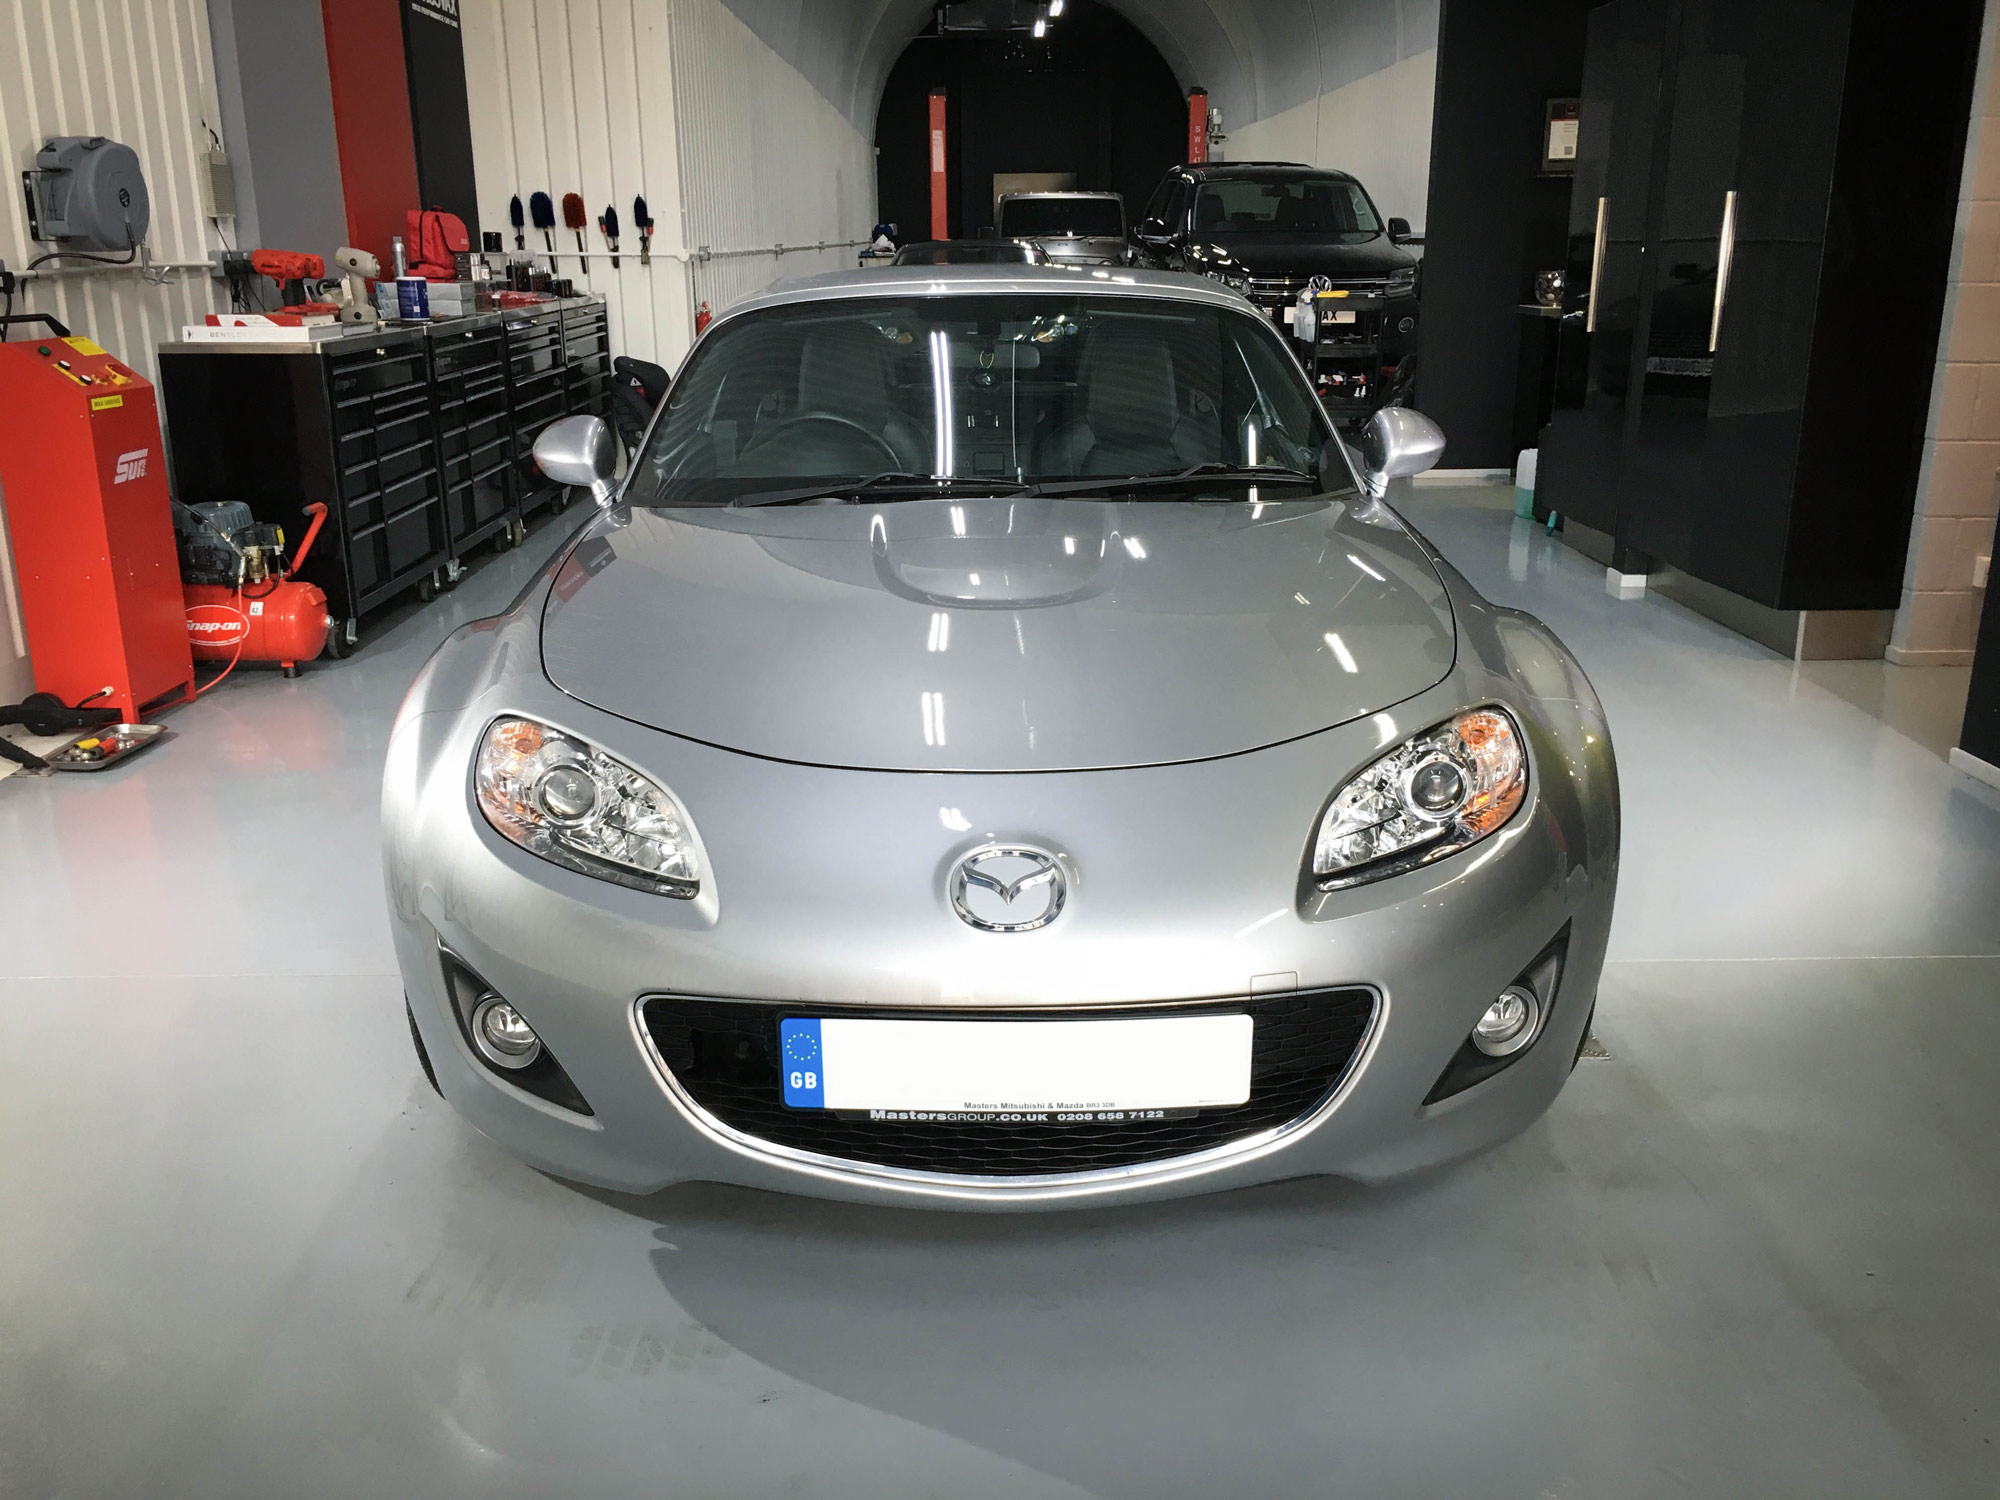 Mazda-mx5-head-on